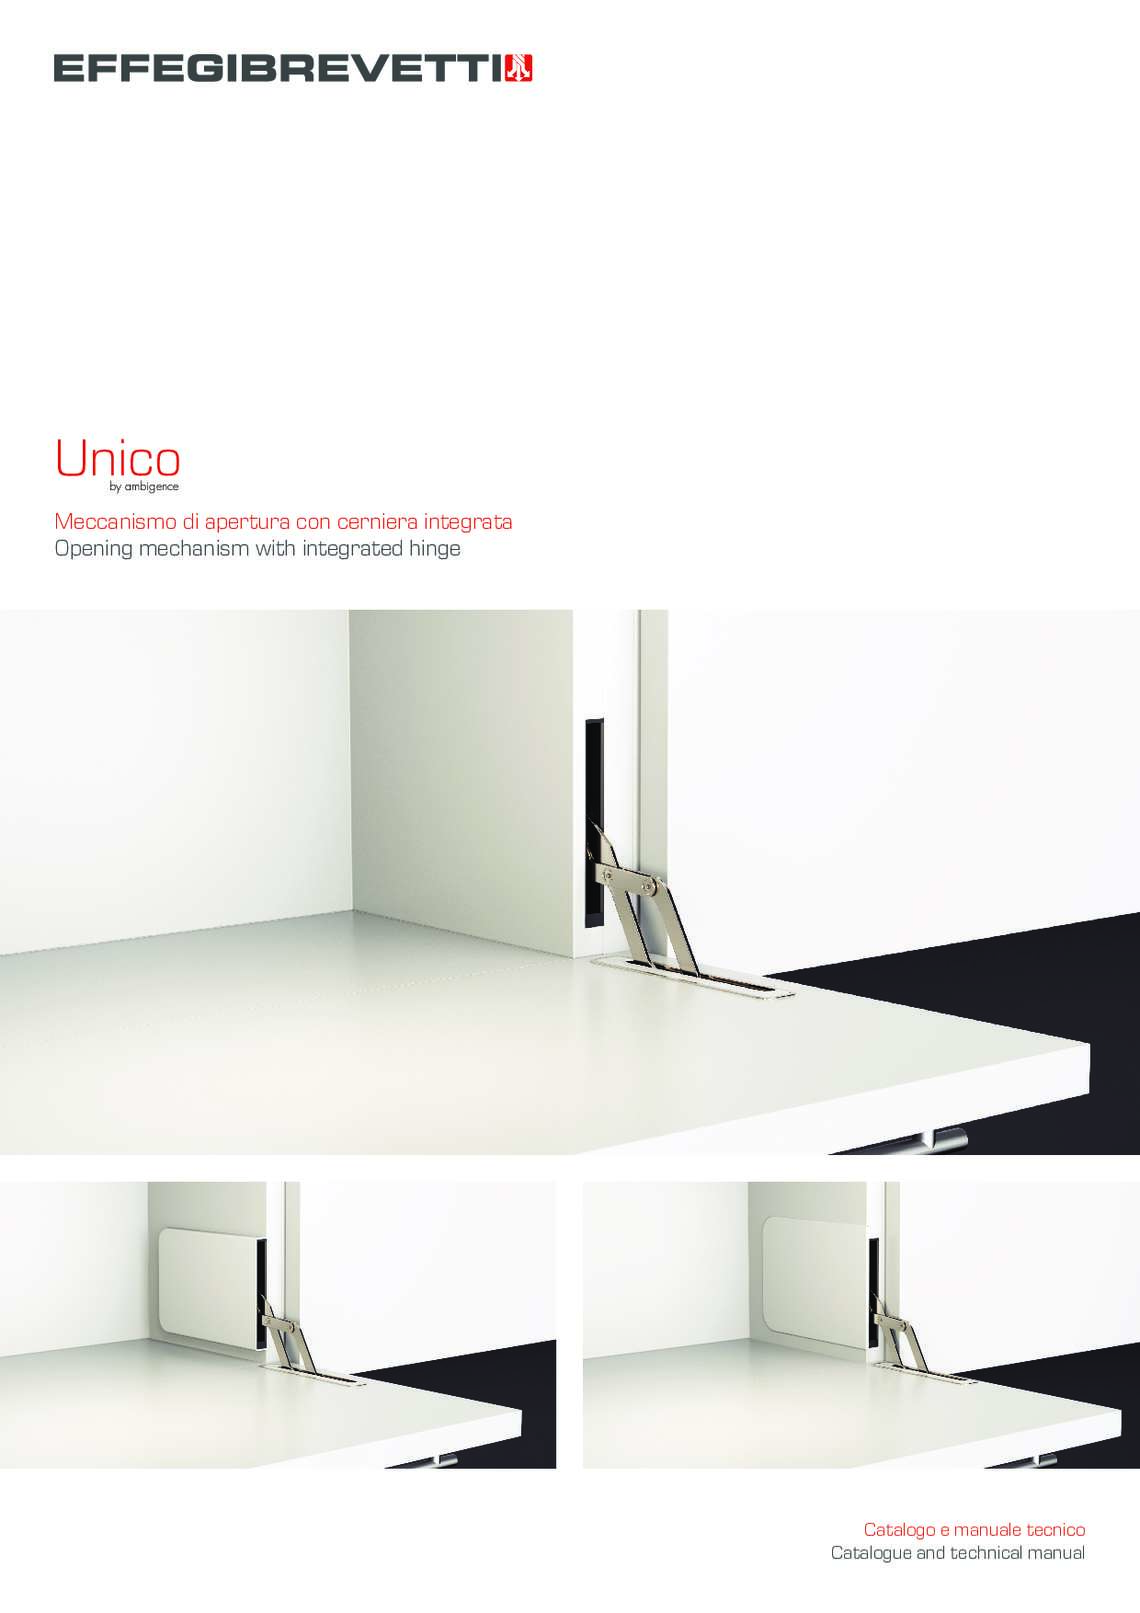 Unico - Opening mechanism with integrated hinge